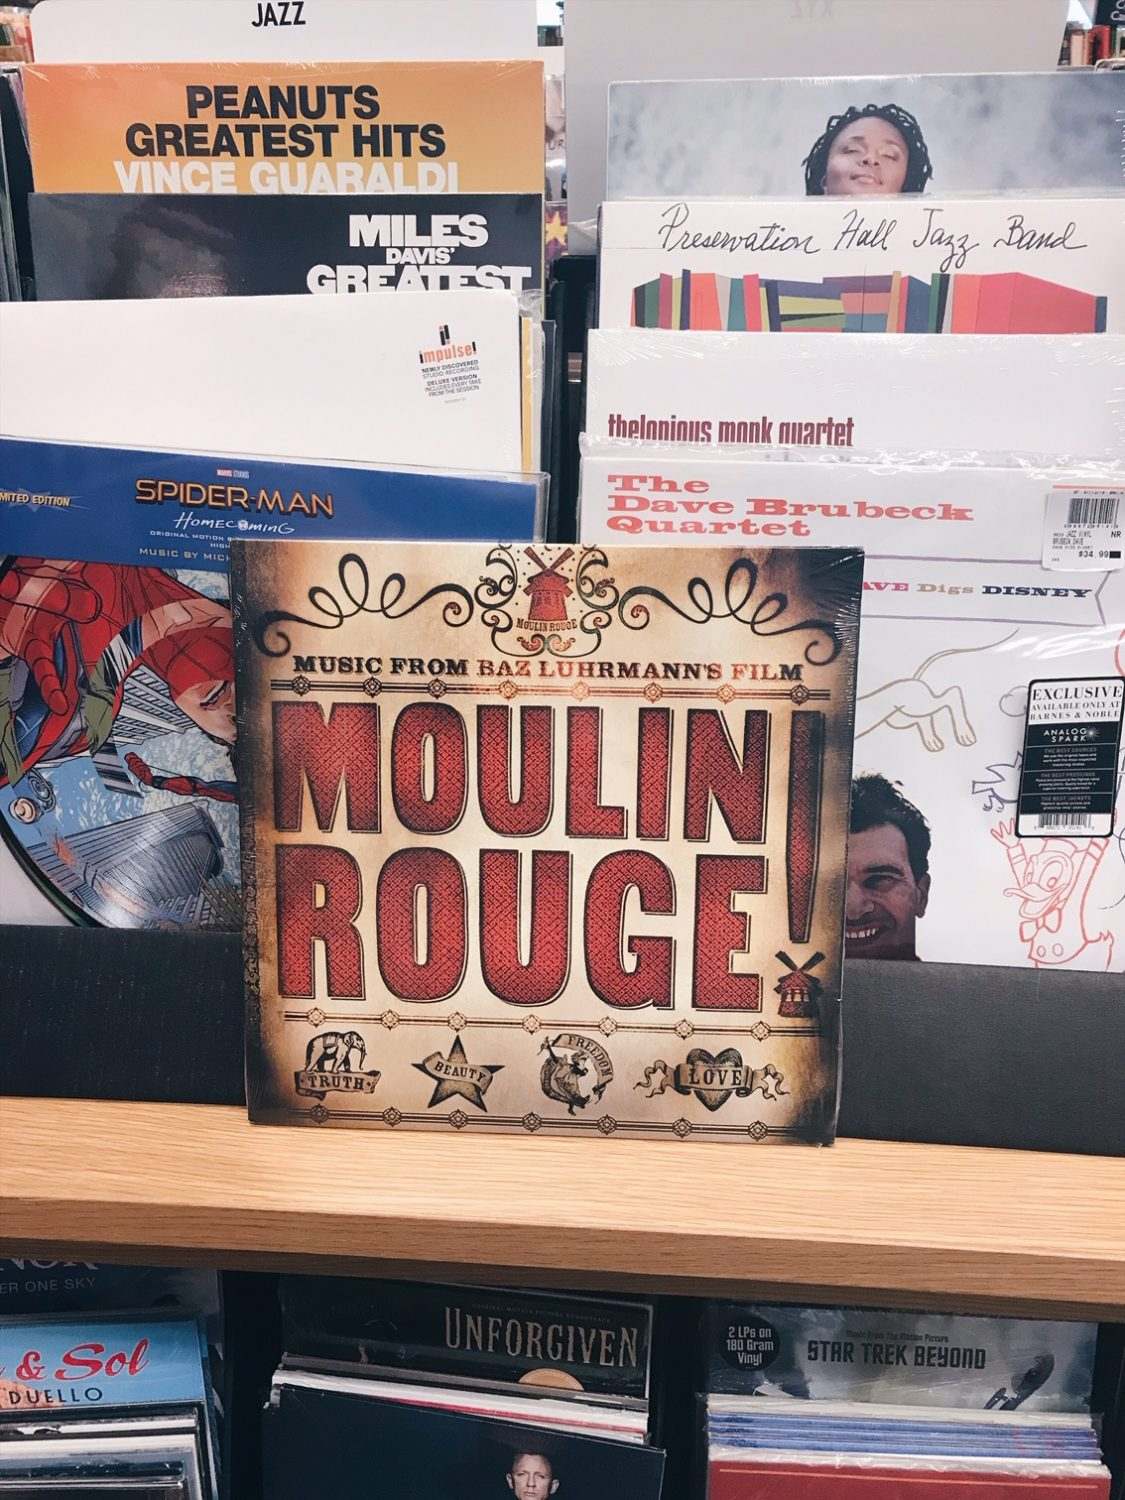 Moulin Rouge Soundtrack Vinyl Record